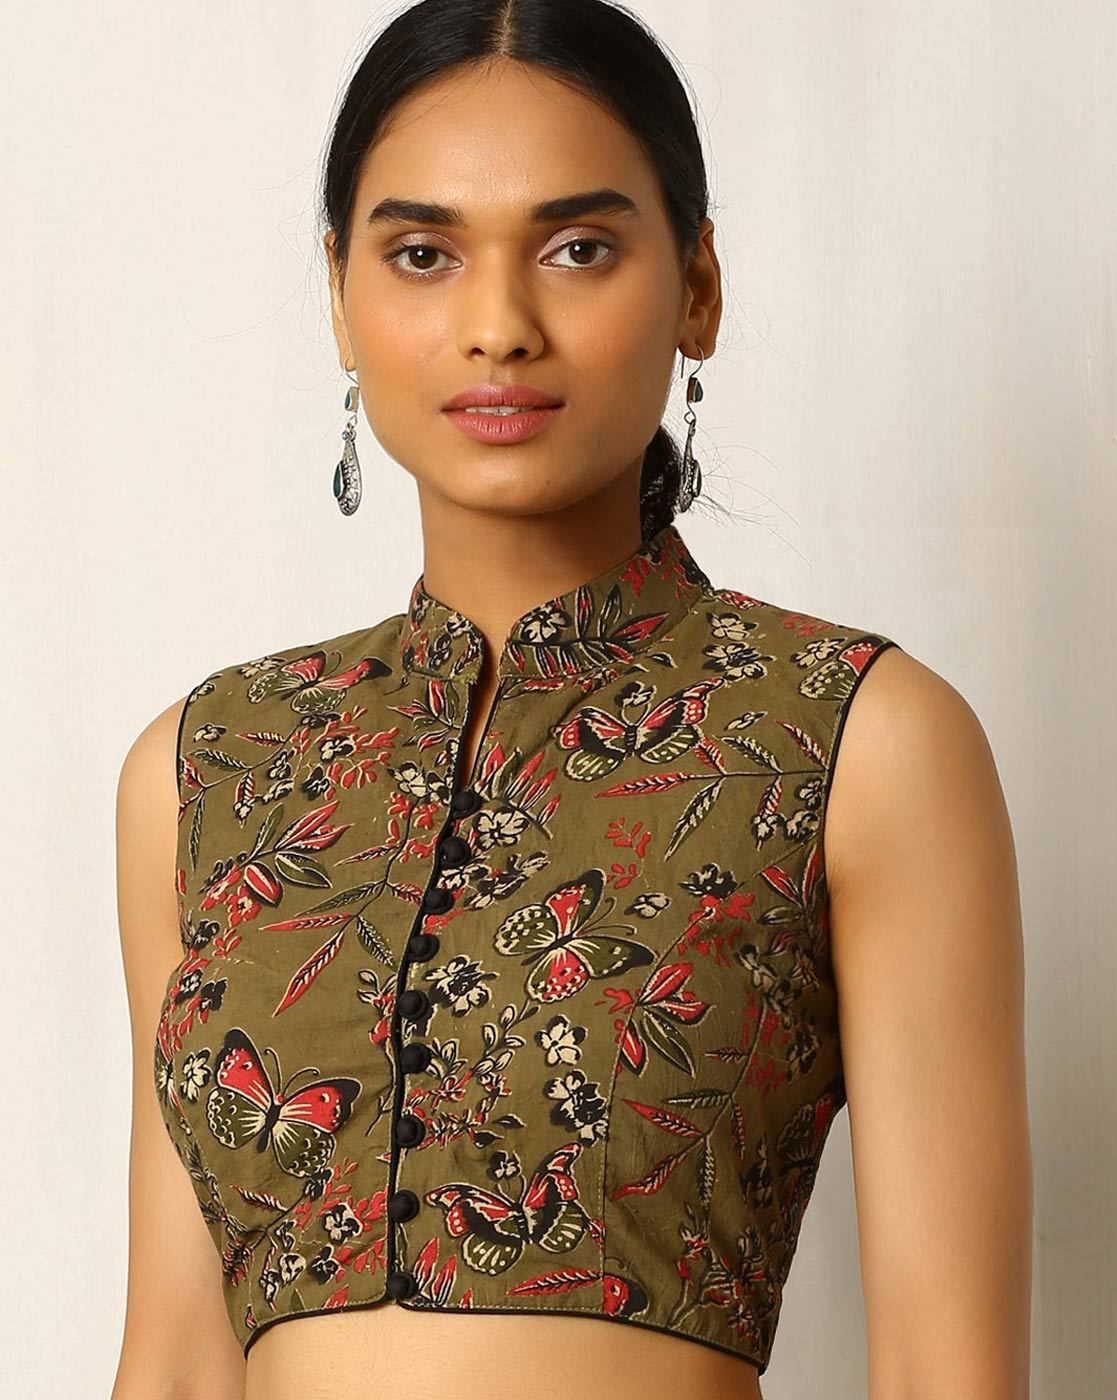 ccac2ba2b9e39 Buy Olive Green Indie Picks Kalamkari Print Sleeveless Cotton Blouse